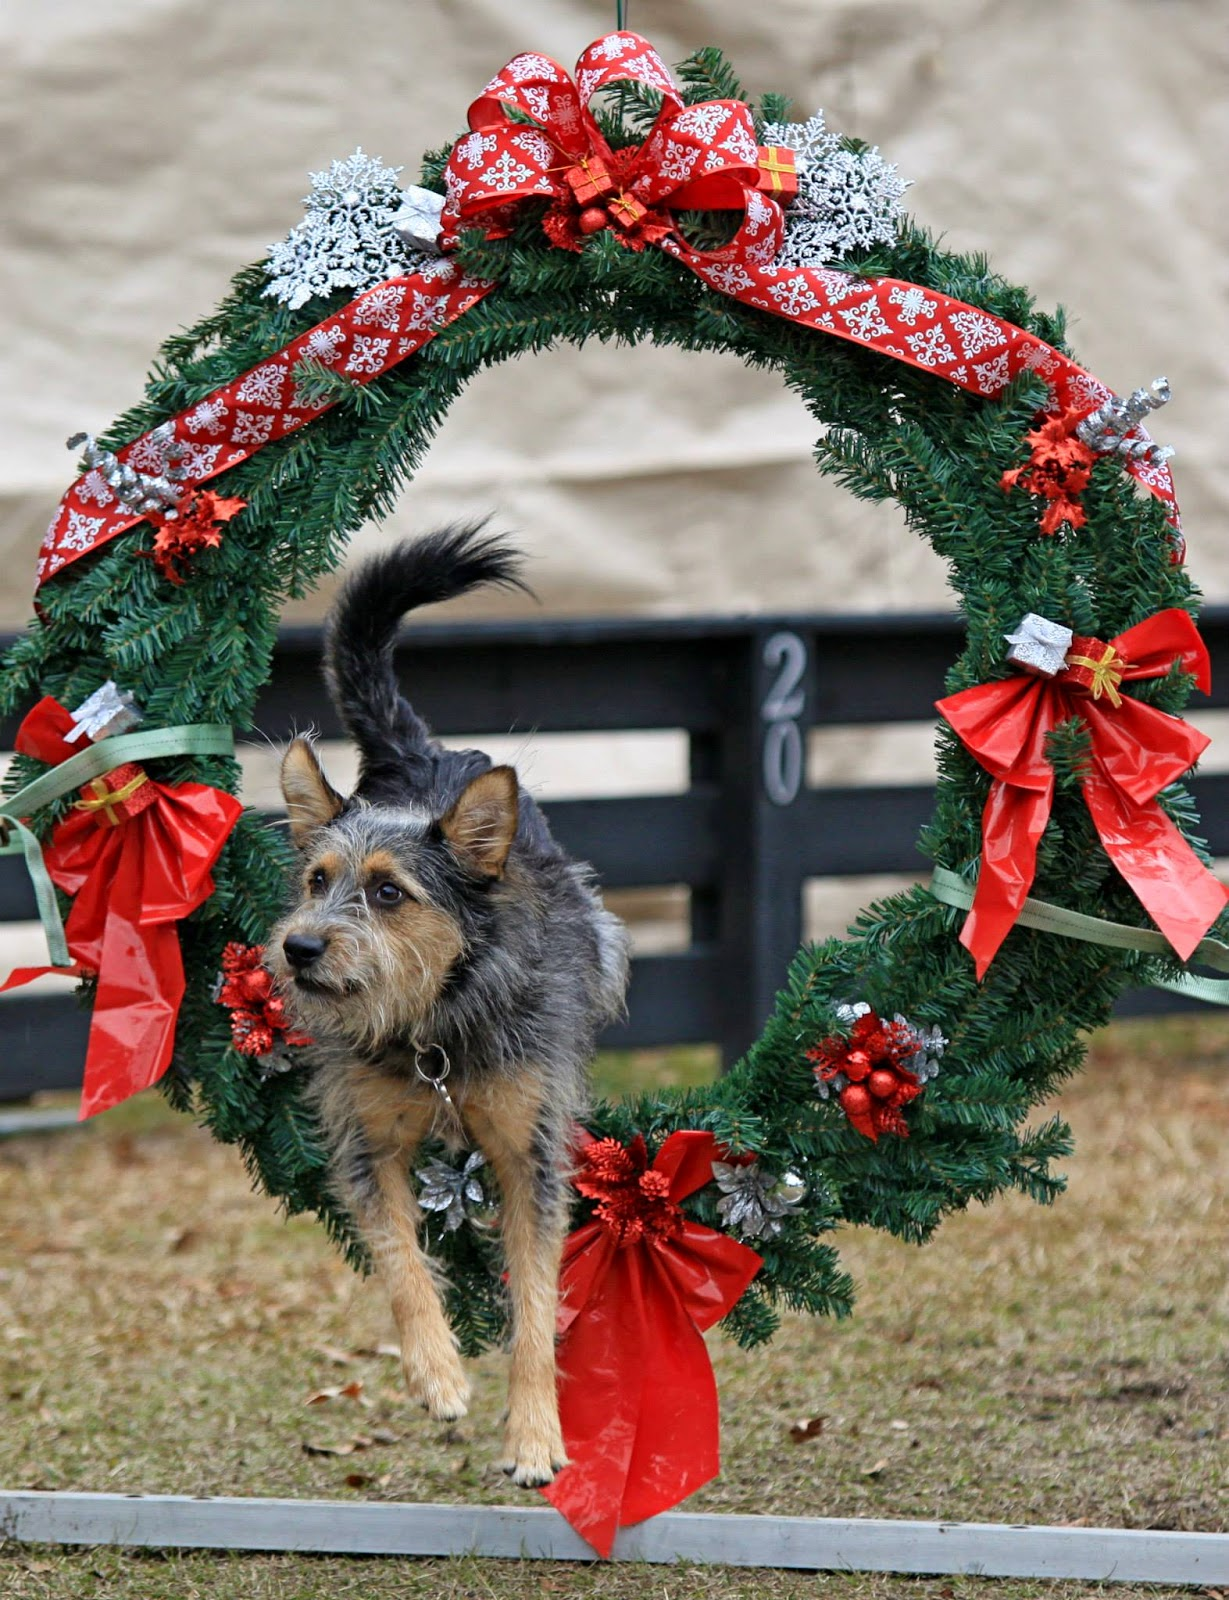 Lupin jumping through a holiday wreath